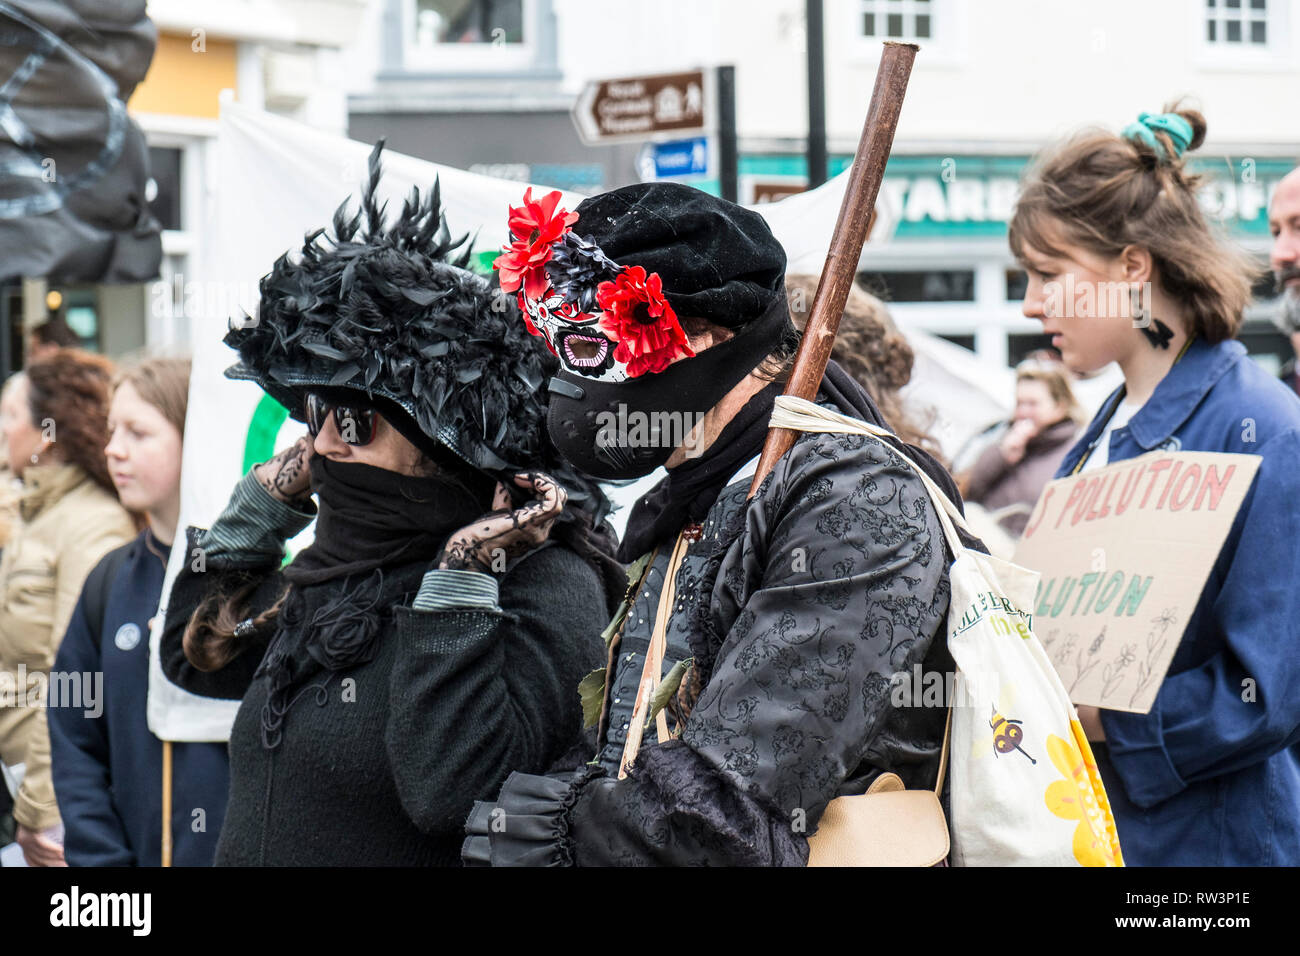 Protesters from Extinction Rebellion holding a demonstration about the ecological crisis. - Stock Image